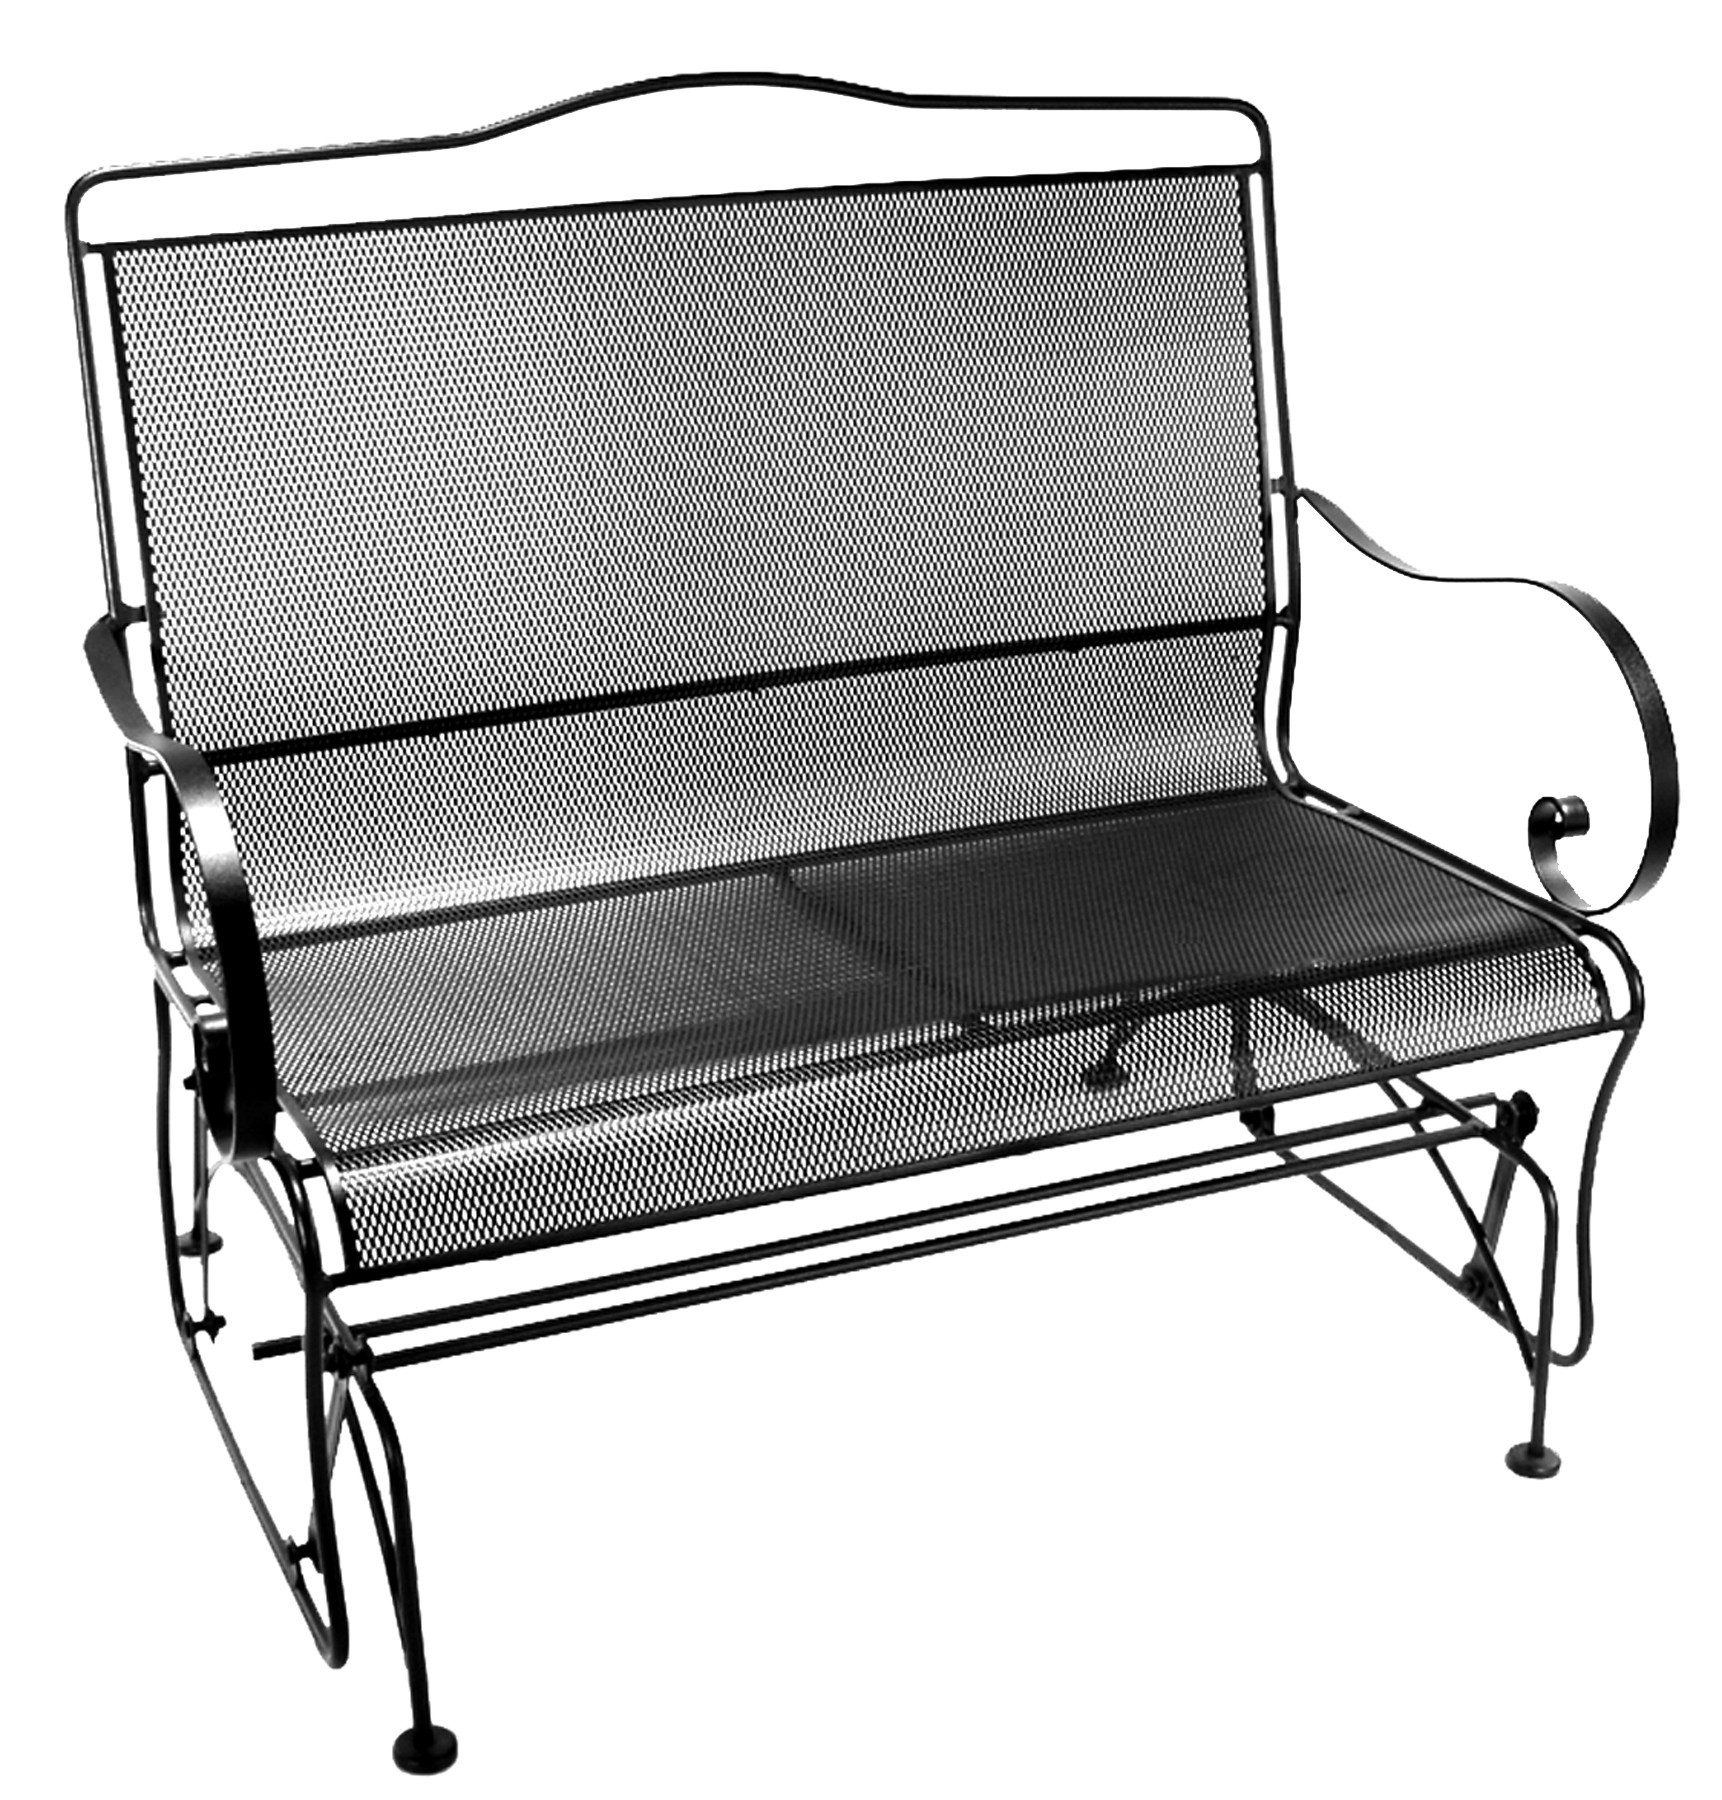 jordan manufacturing outdoor patio wrought iron chair cushion menards lawn chairs for a penny avalon settee glider hauser 39s